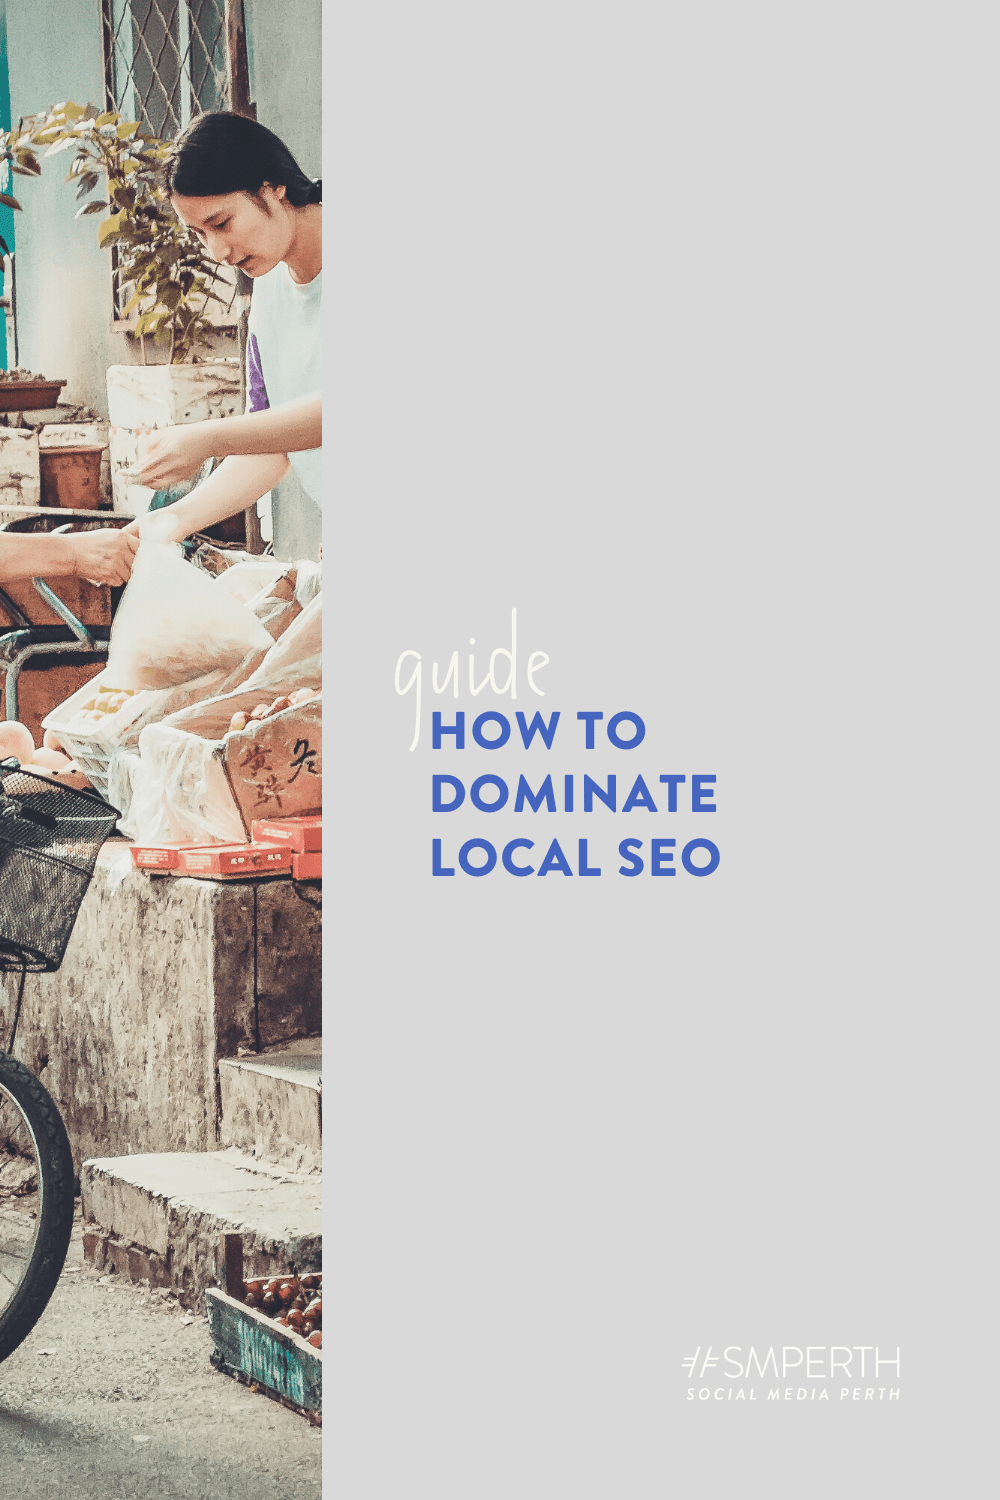 6 Tips To Dominate Local SEO in 2021